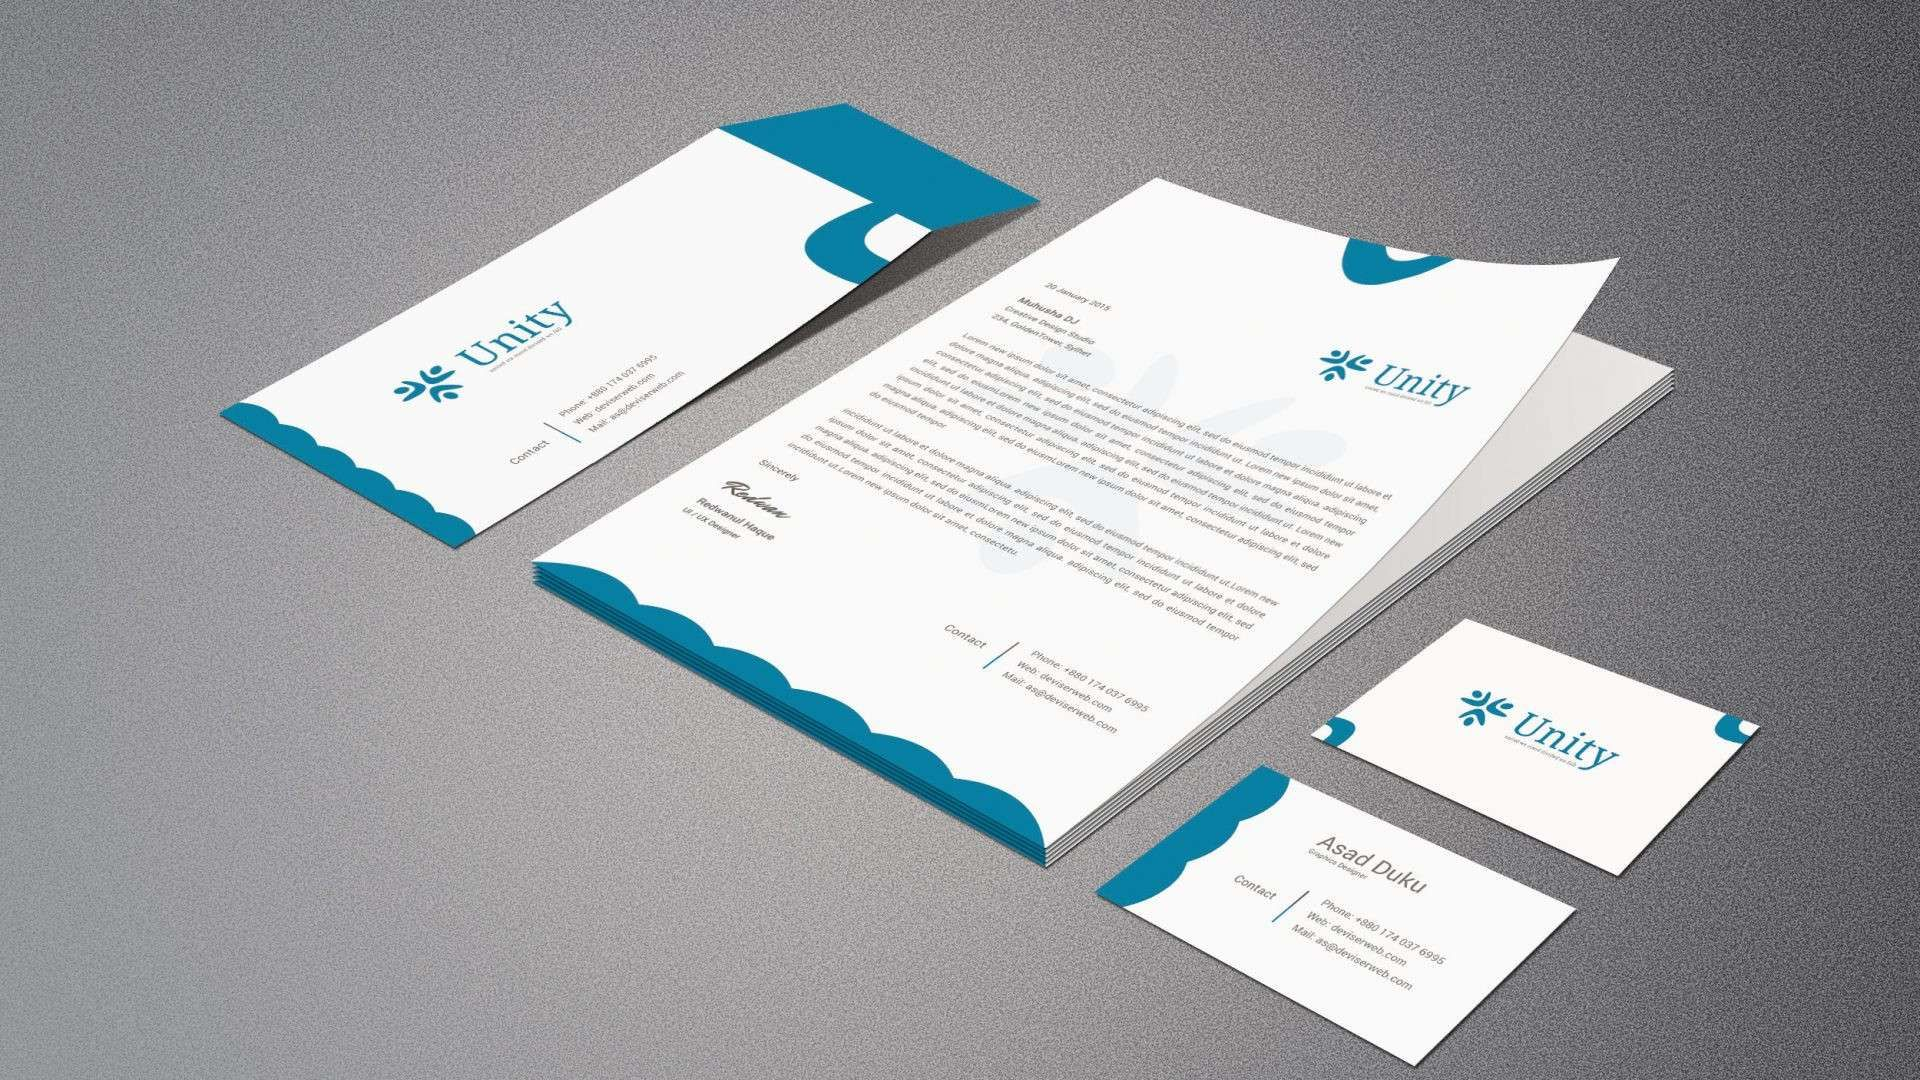 23 Blank Business Card Template Word 2013 Blank Business Card Template New Free Printable Sample Business Cards Business Card Template Word Cool Business Cards